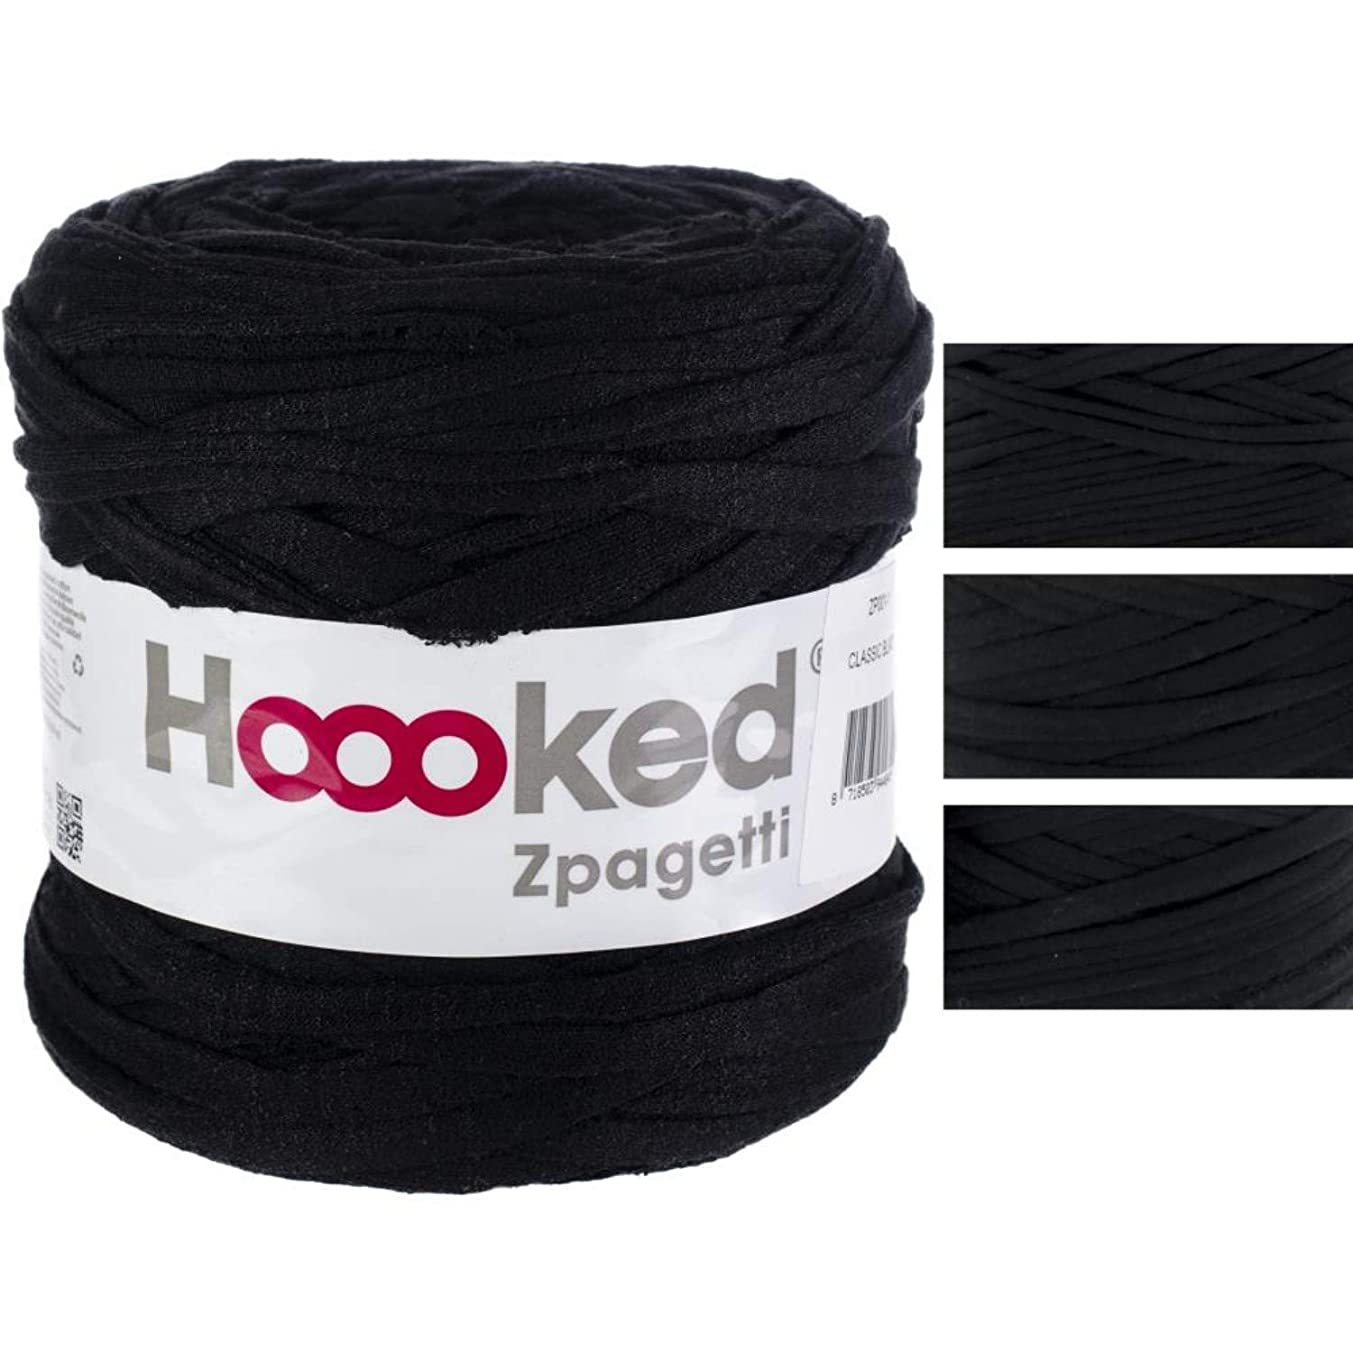 Hoooked Zpagetti Yarn-classic Black - Pure Black Shades